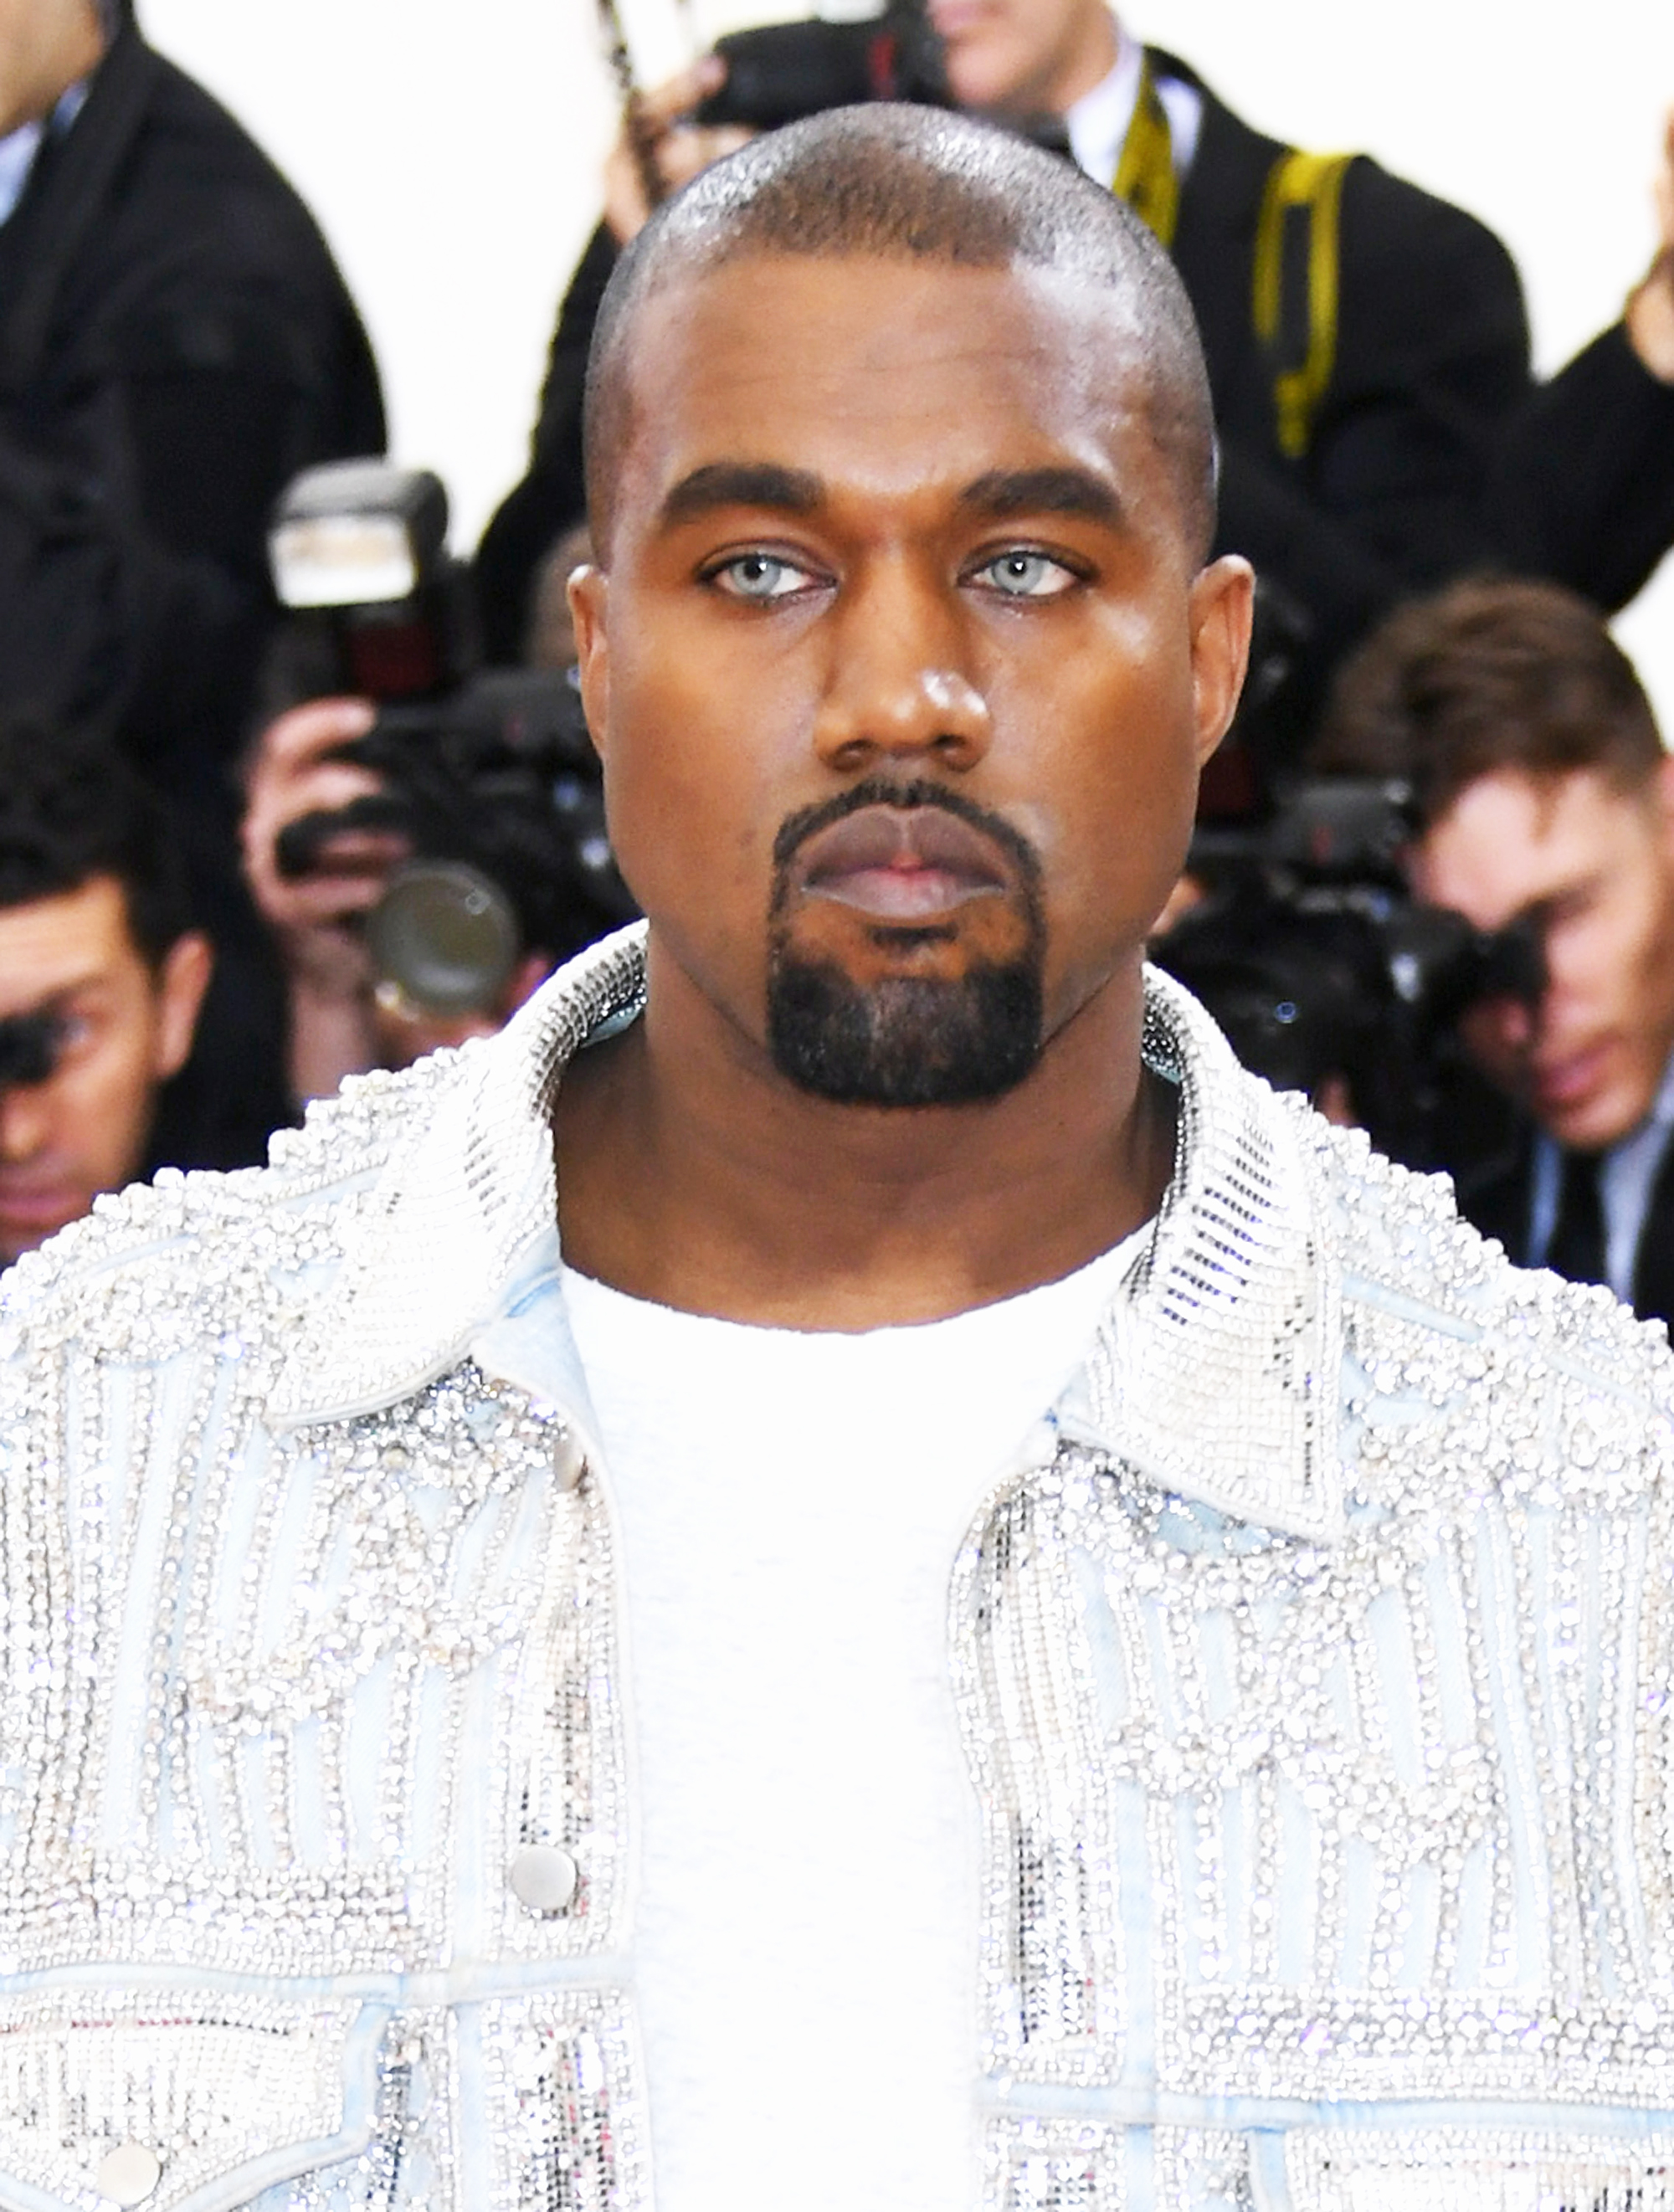 Kanye West attends the Met Gala in New York City, on May 2, 2016.